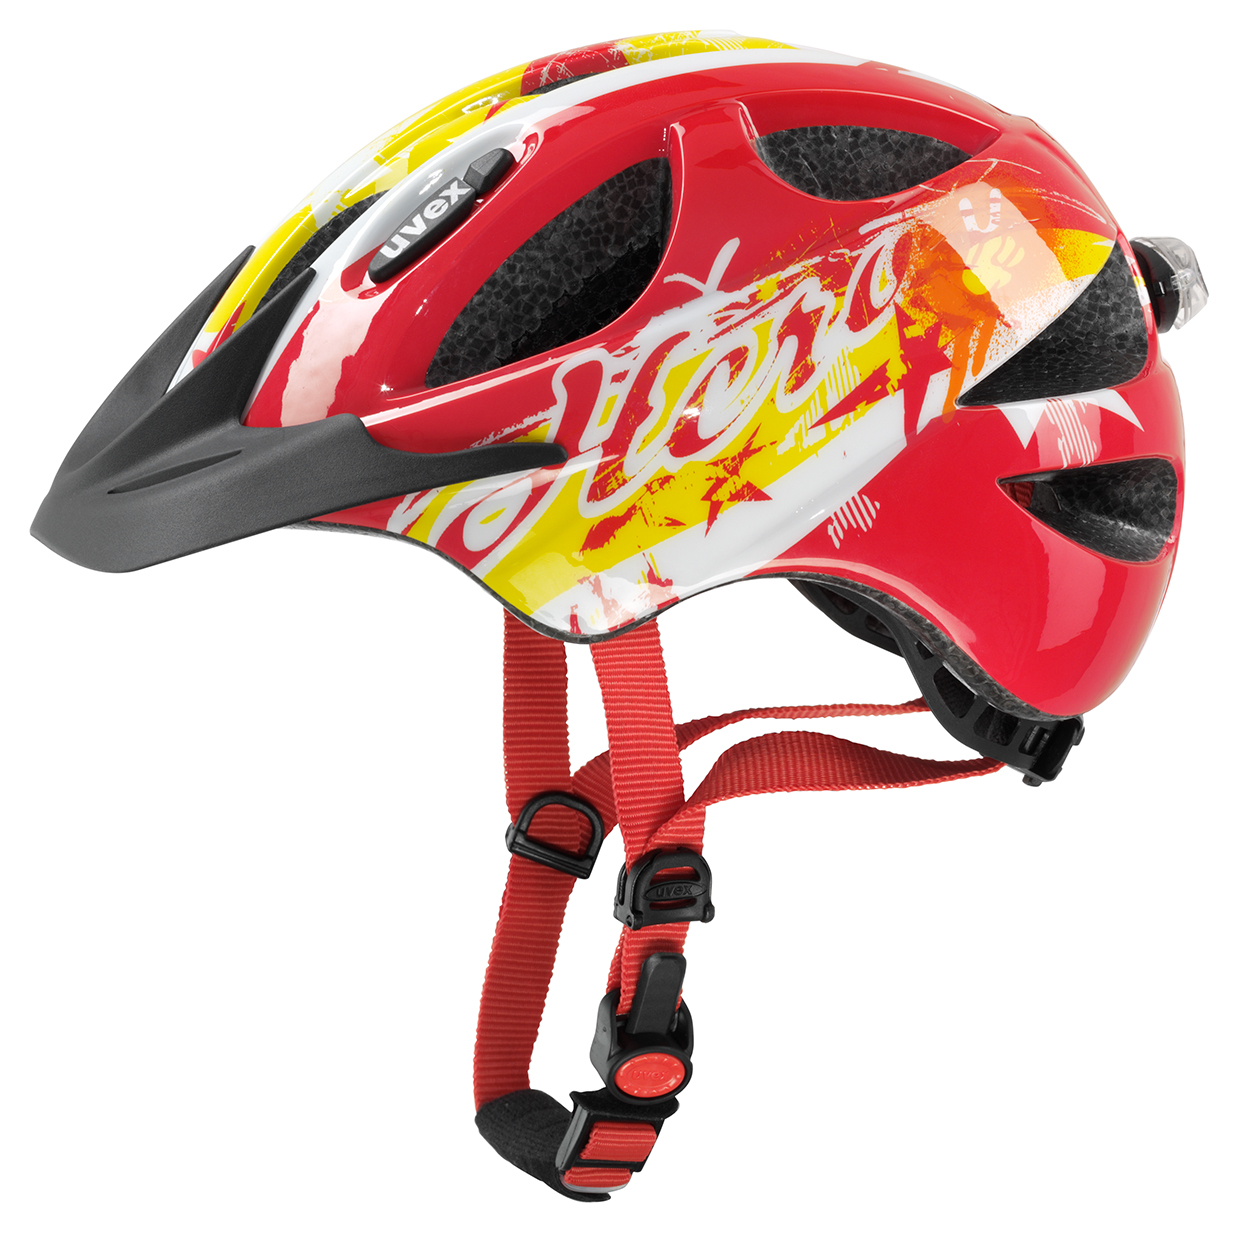 UVEX HERO, 2015 HERO RED